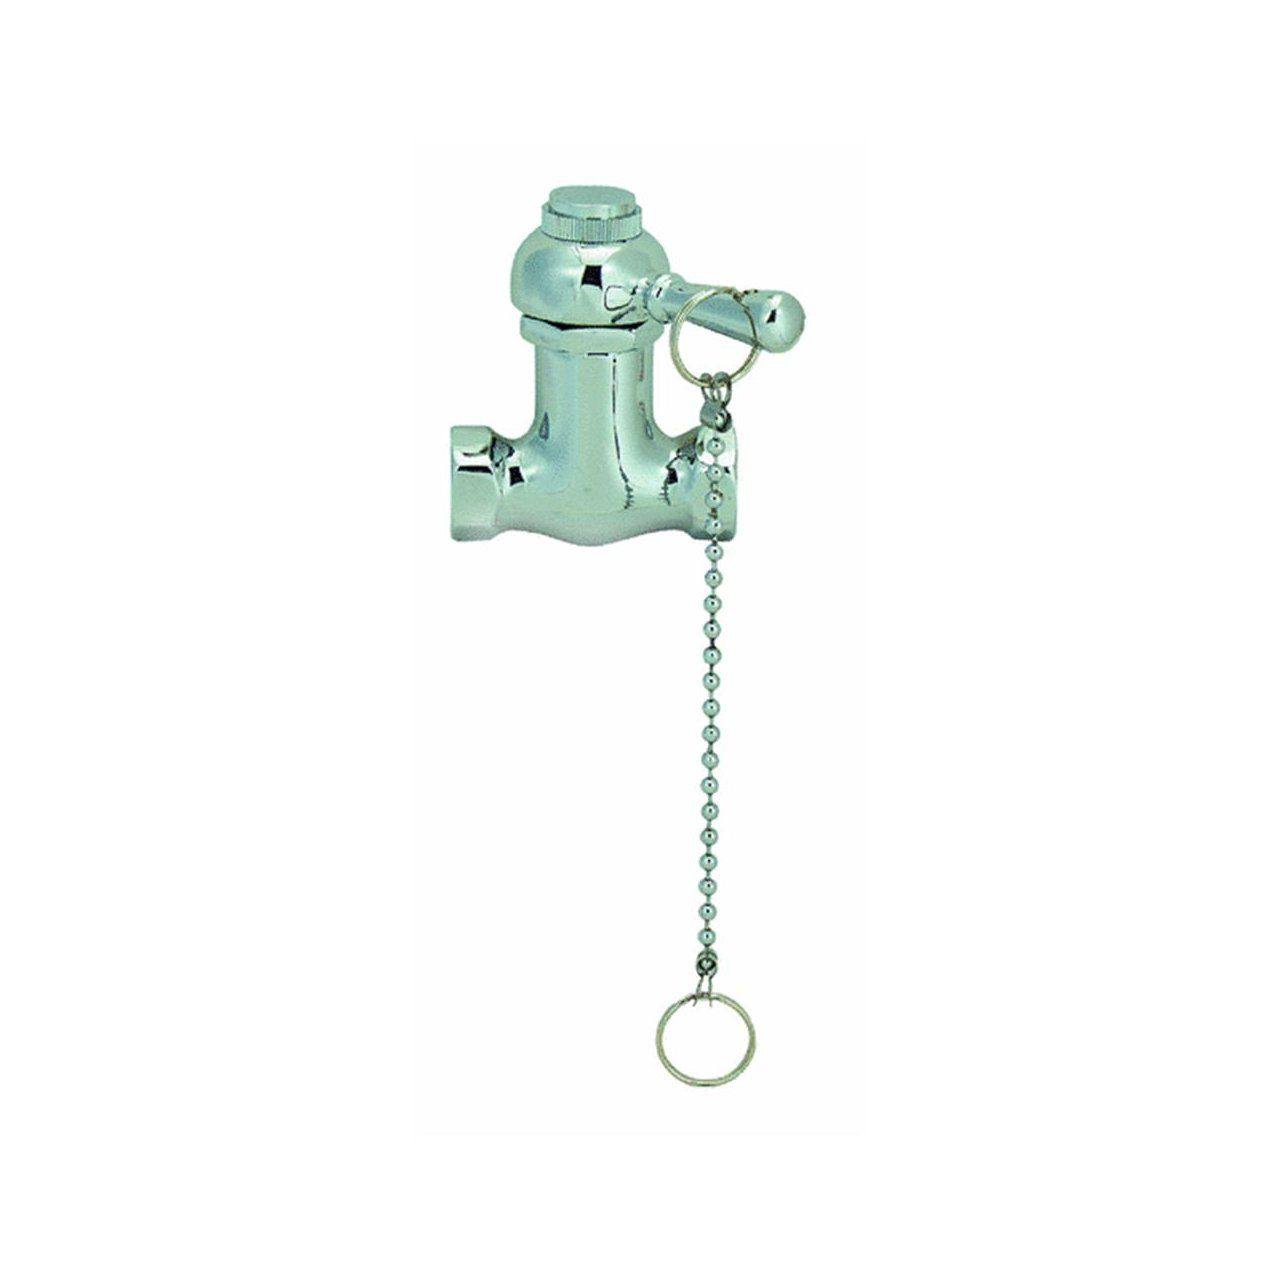 Pull Chain Shower Adorable Jones Stephens S05100 Selfclosing Heavy Duty Shower Valve With Review